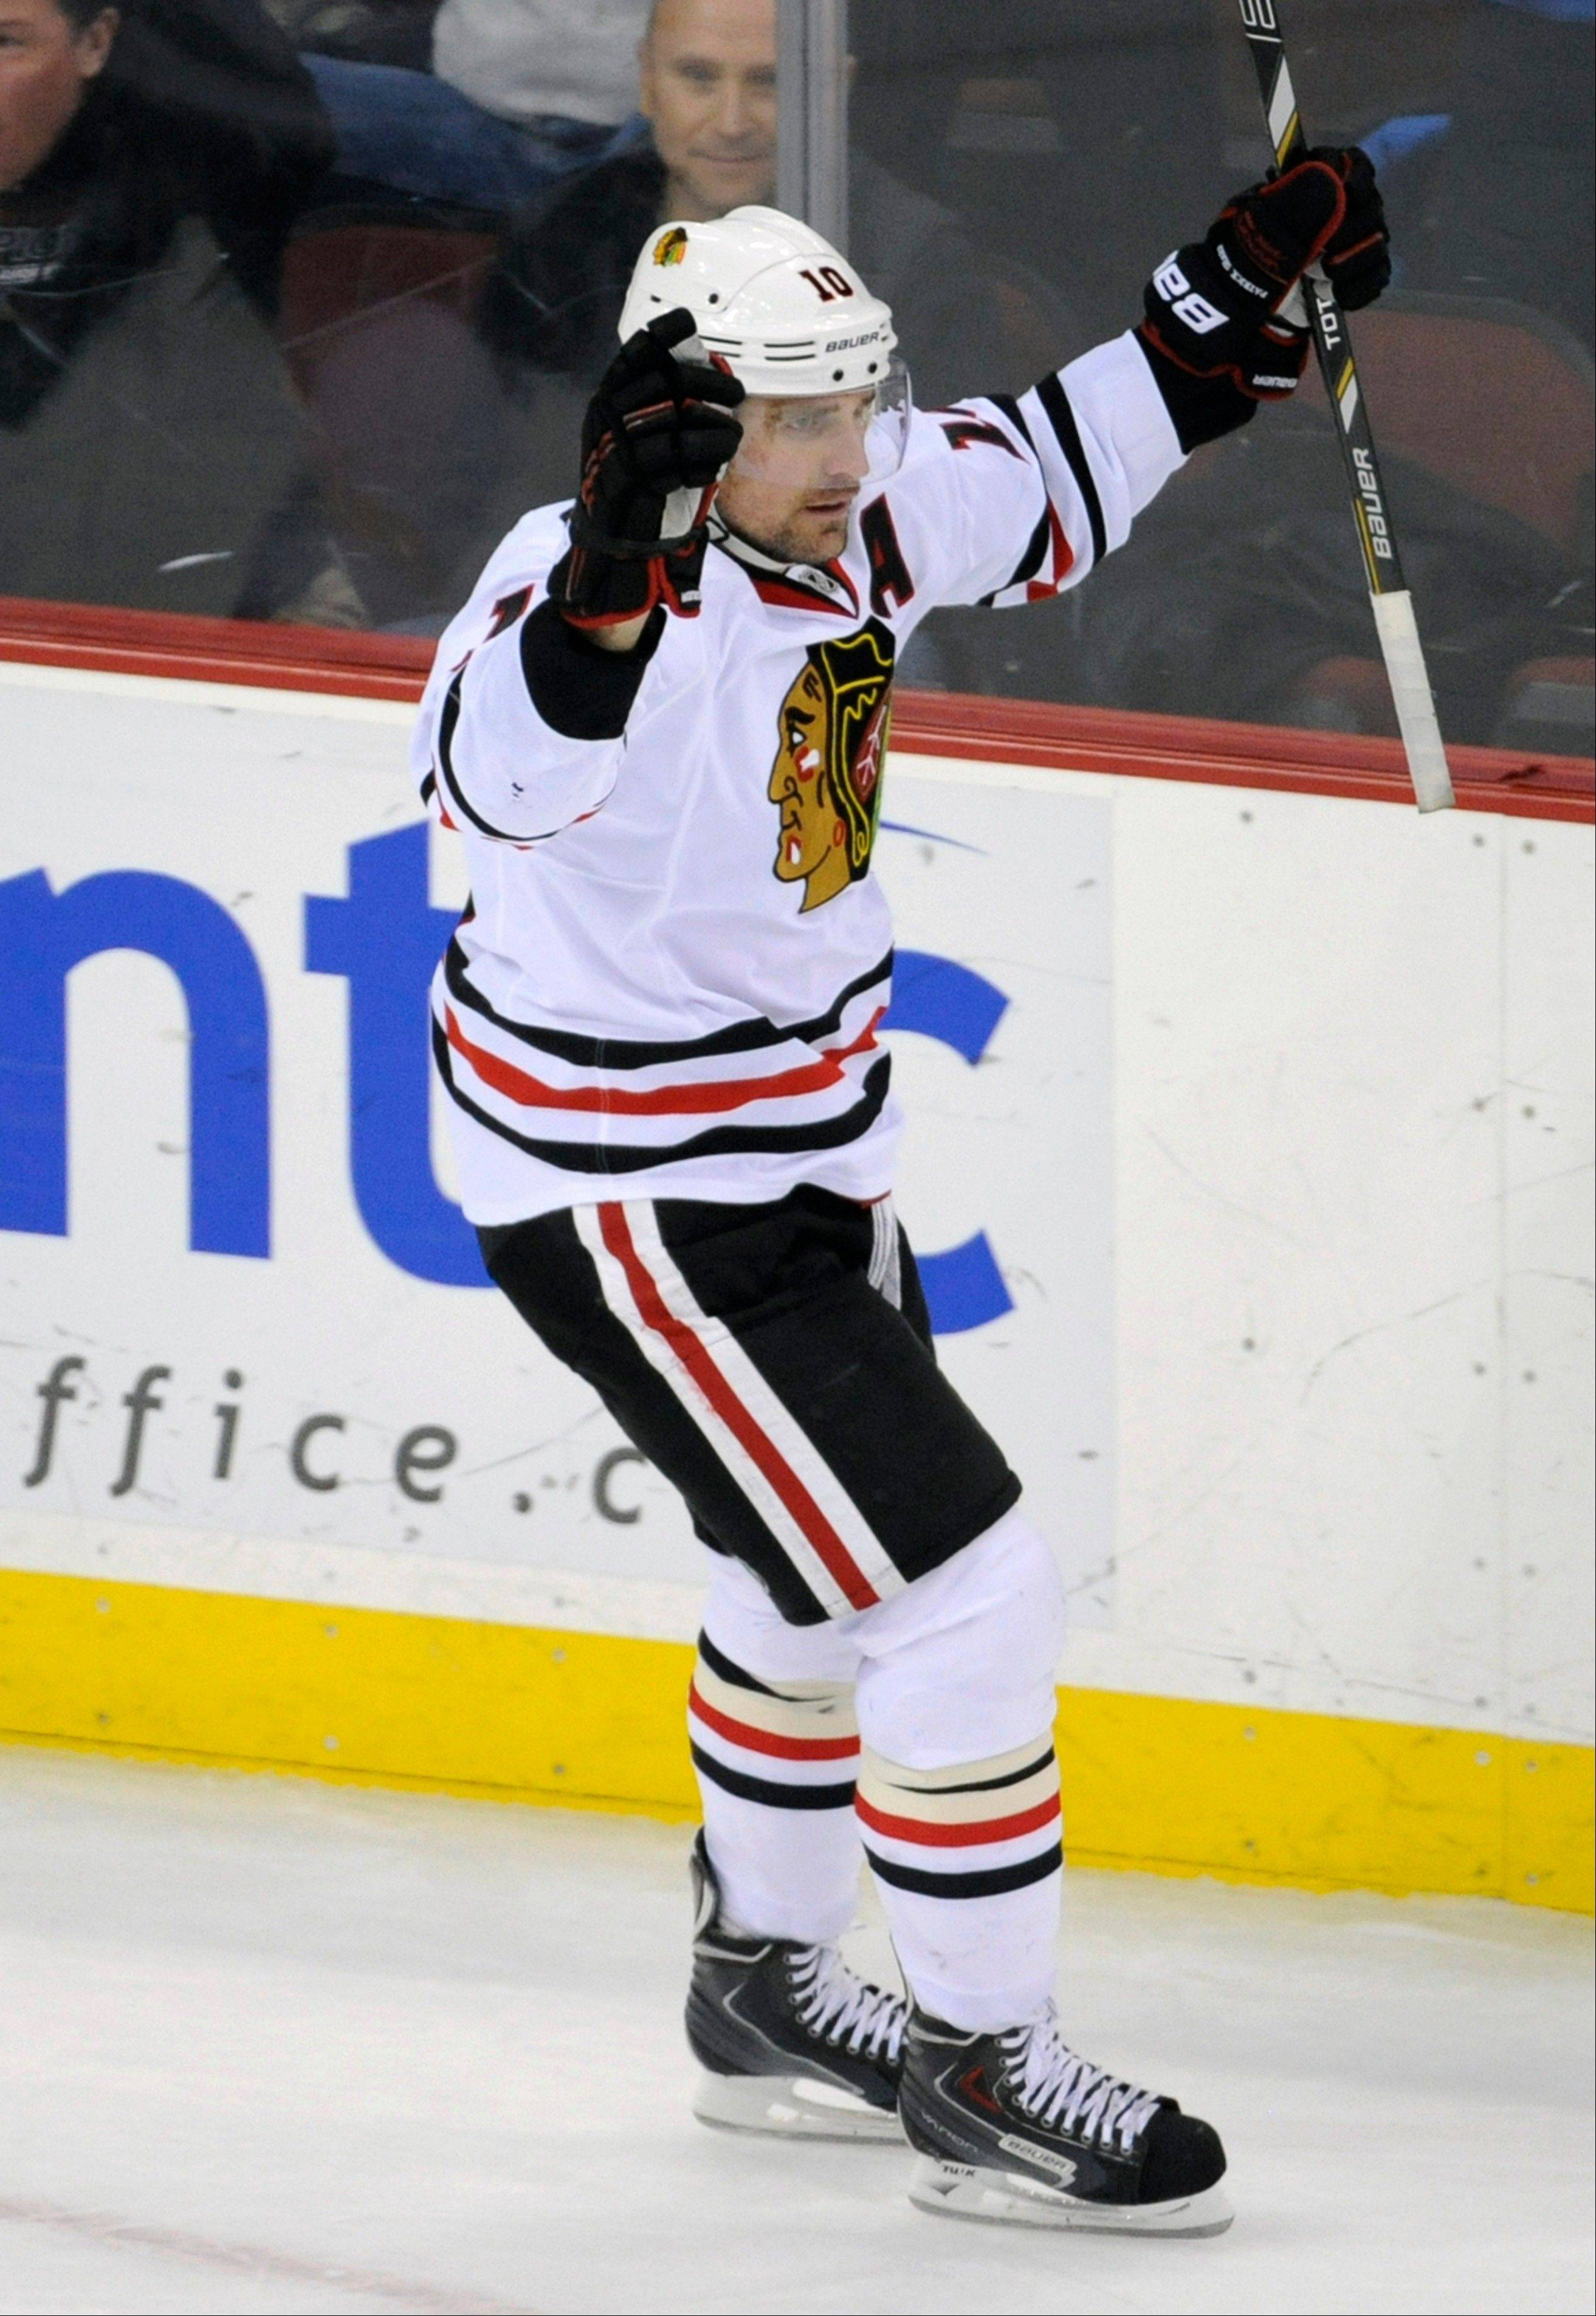 The Blackhawks� Patrick Sharp celebrates his fourth career hat trick and second in his last five games. The red-hot Sharp has 14 goals in his last 13 games.